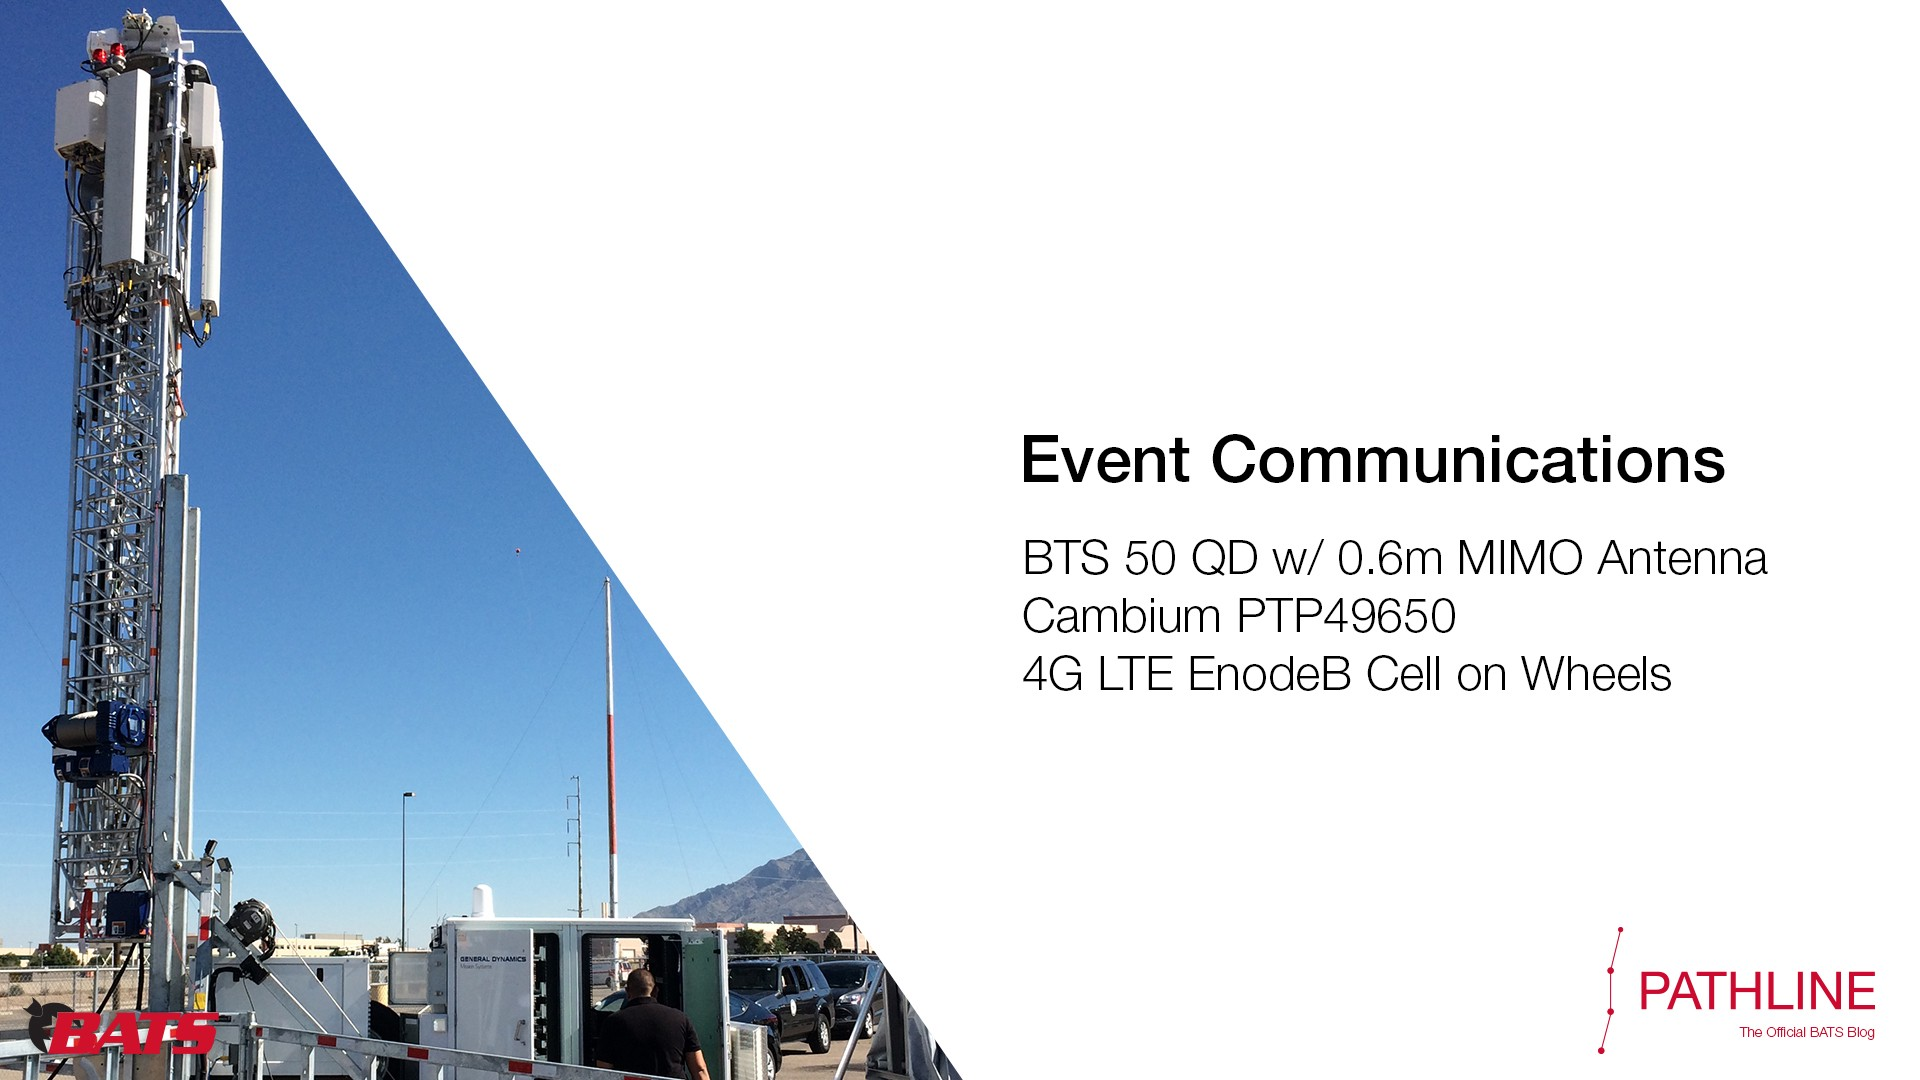 Deployed: Innovative Solutions for Event Communications